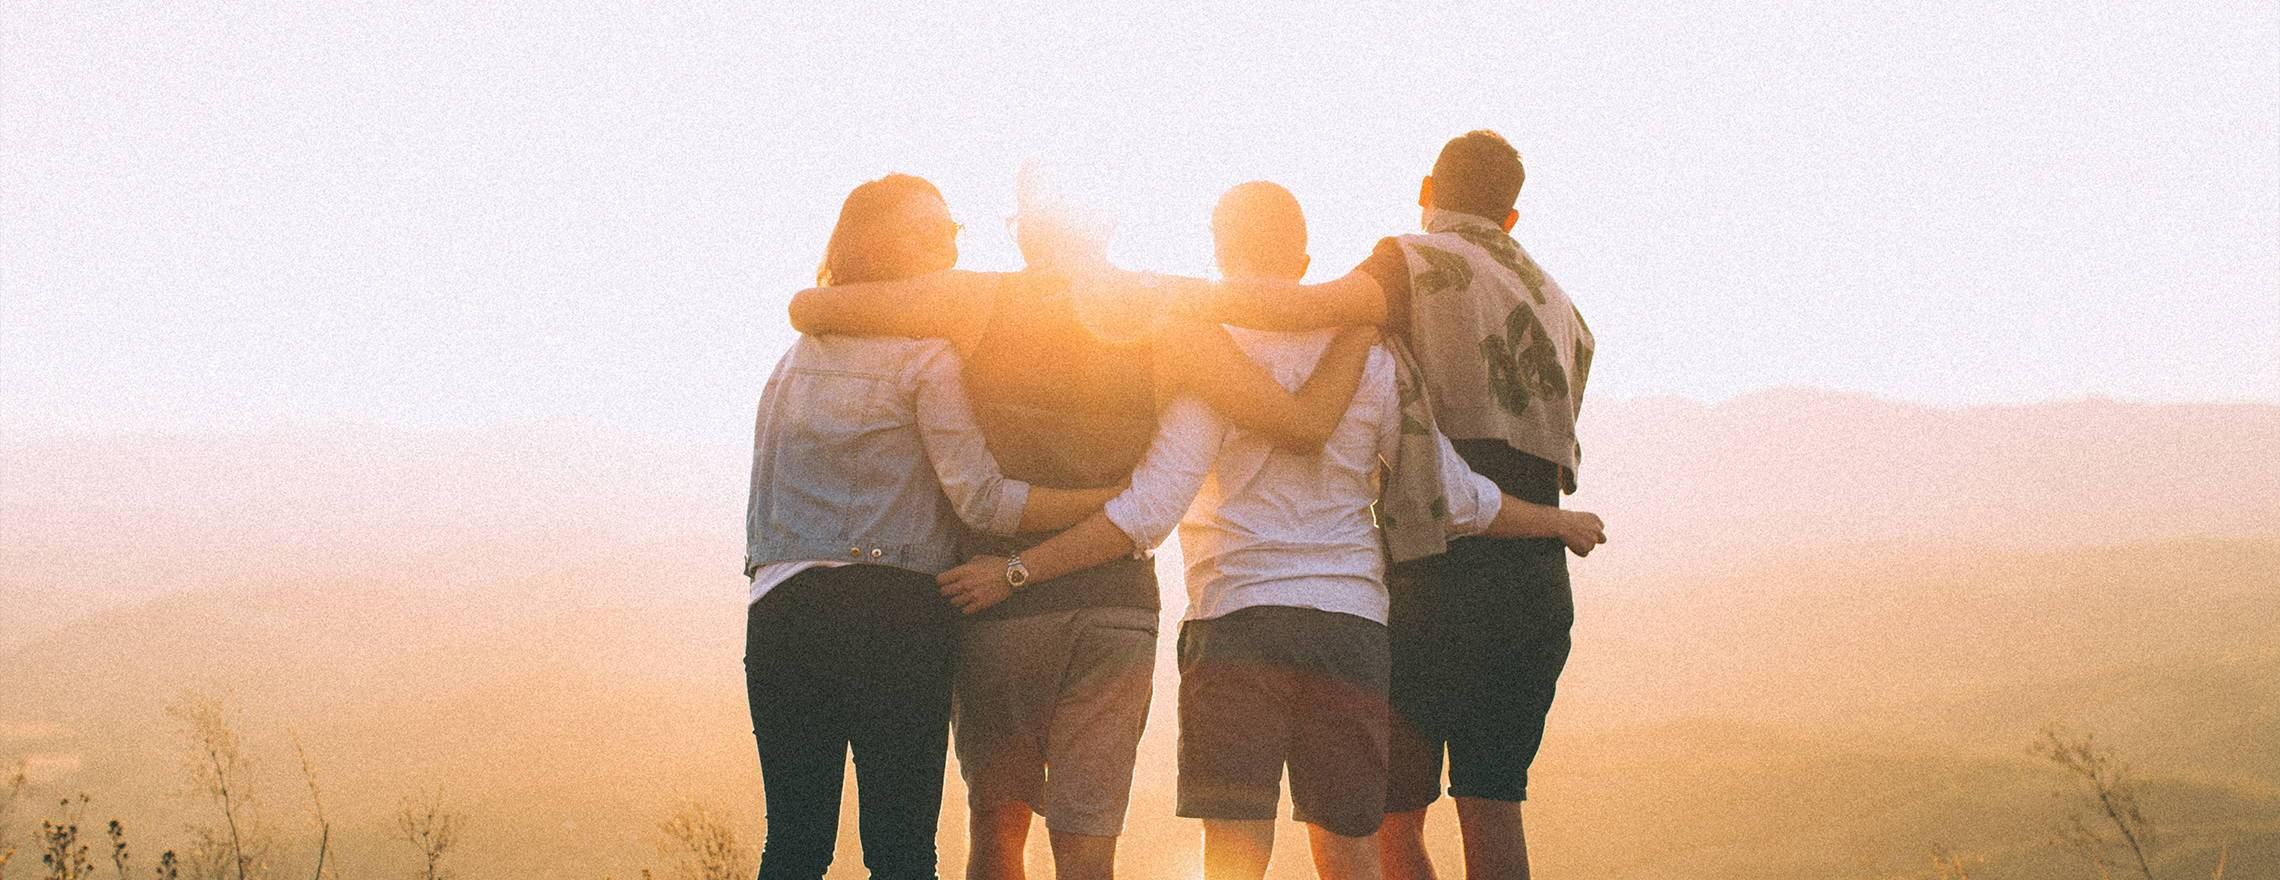 group_of_people_standing_arm_in_arm_looking_into_the_sunset